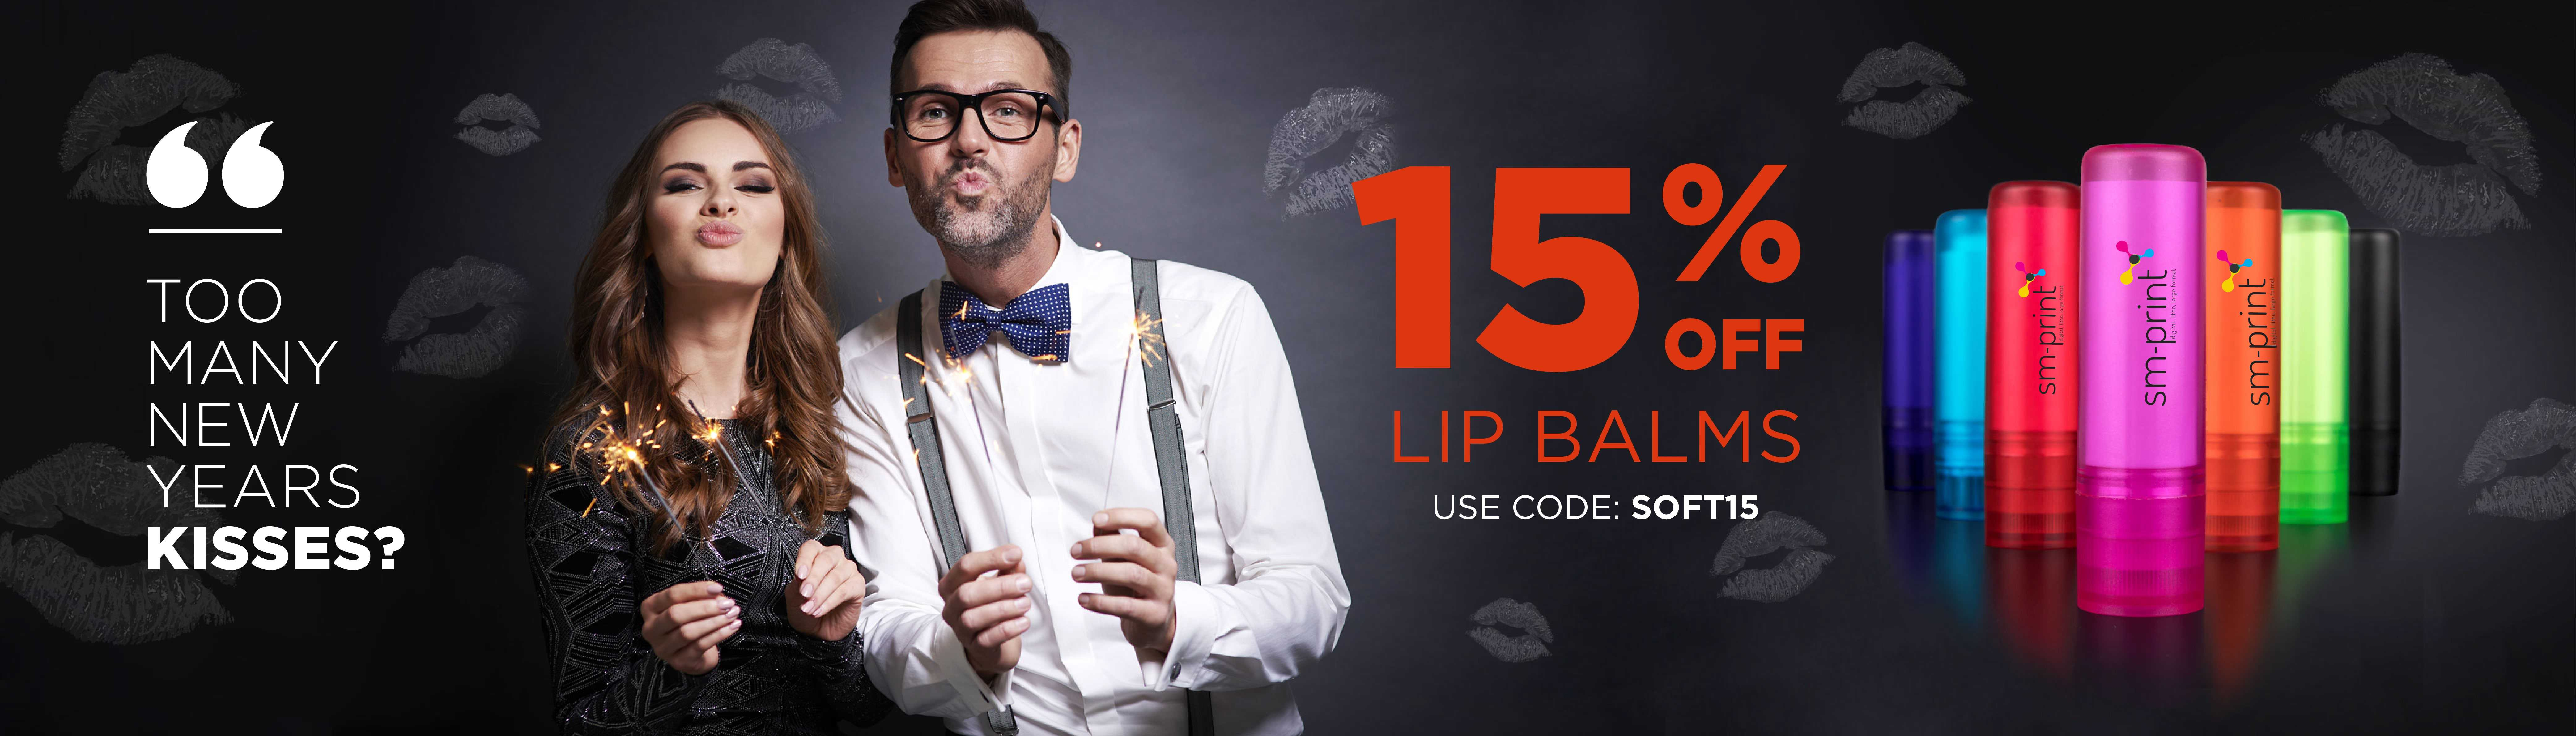 Channl Lip Balm Offer